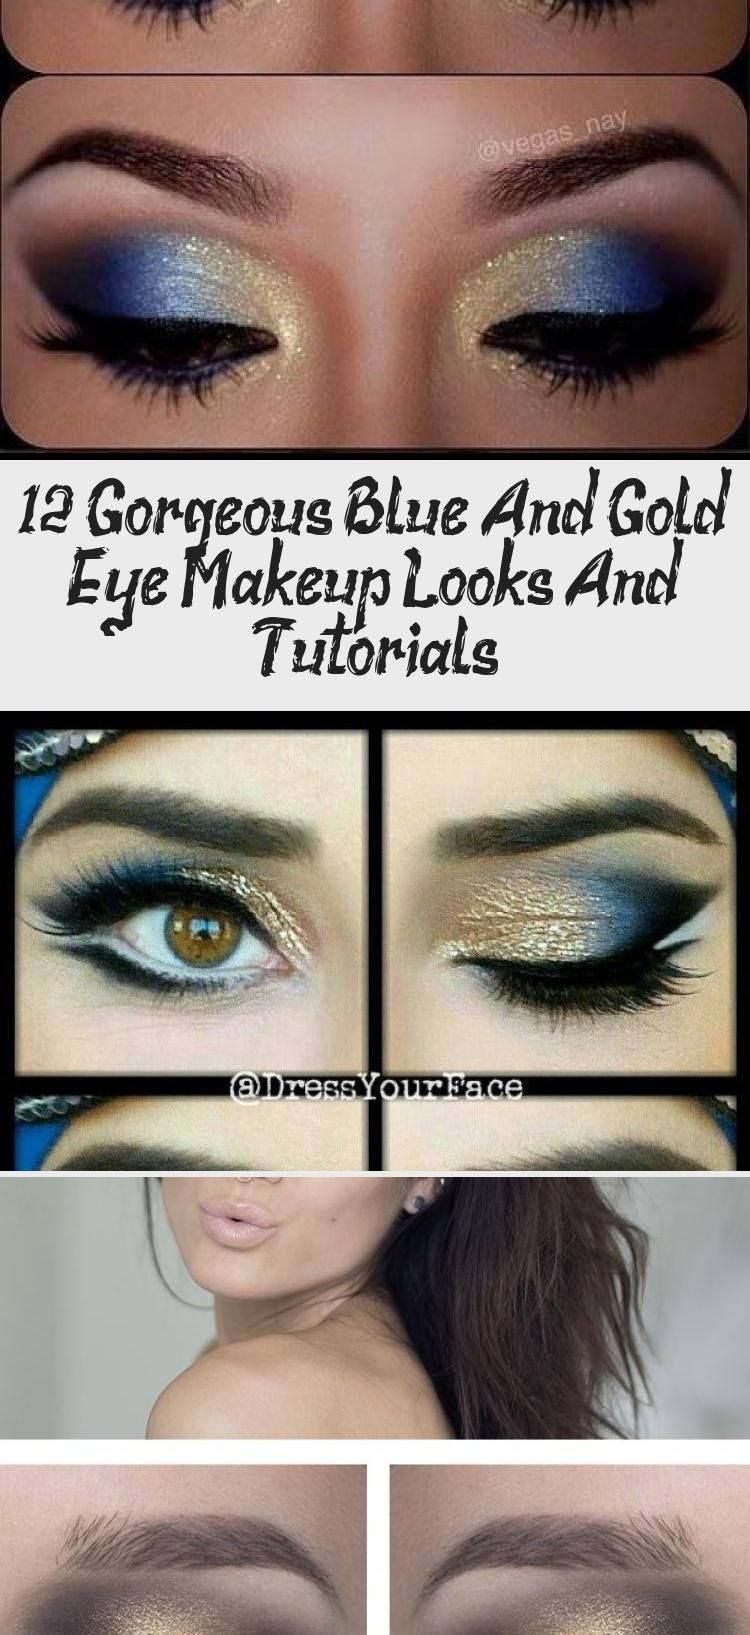 #beauty #style #fashion #hair #makeup #skincare #nails #health #fitness #exercise #EyemakeupEasy #Ey...